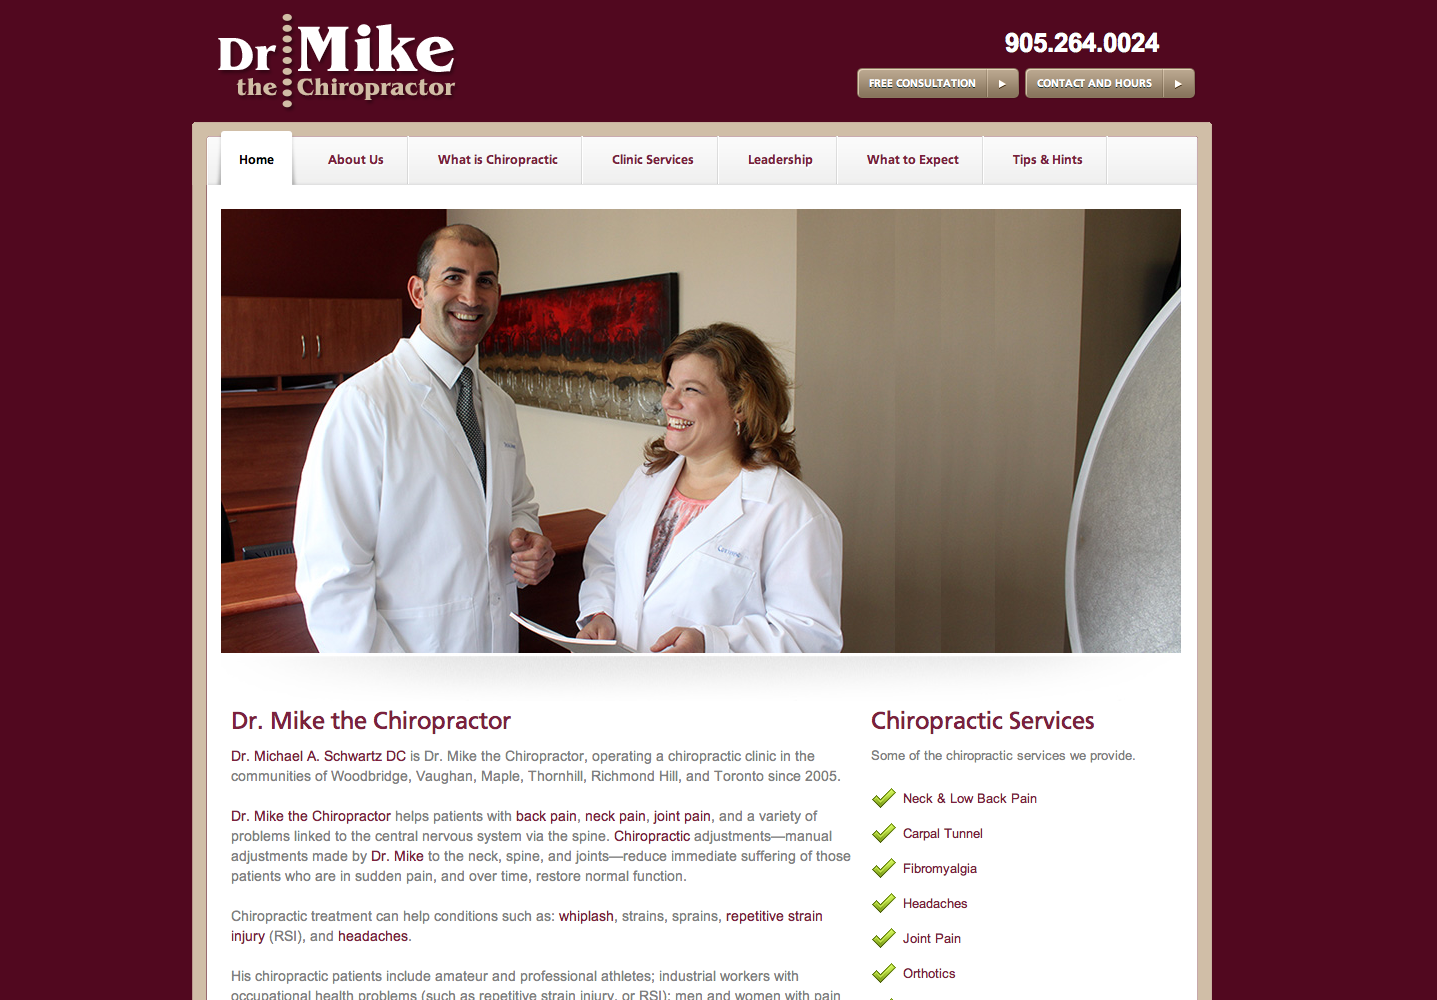 We created the Dr. Mike the Chiropractor brand, logo, printed his clinic's stationery, and then created this 30-plus page website- all part of a business turnaround.